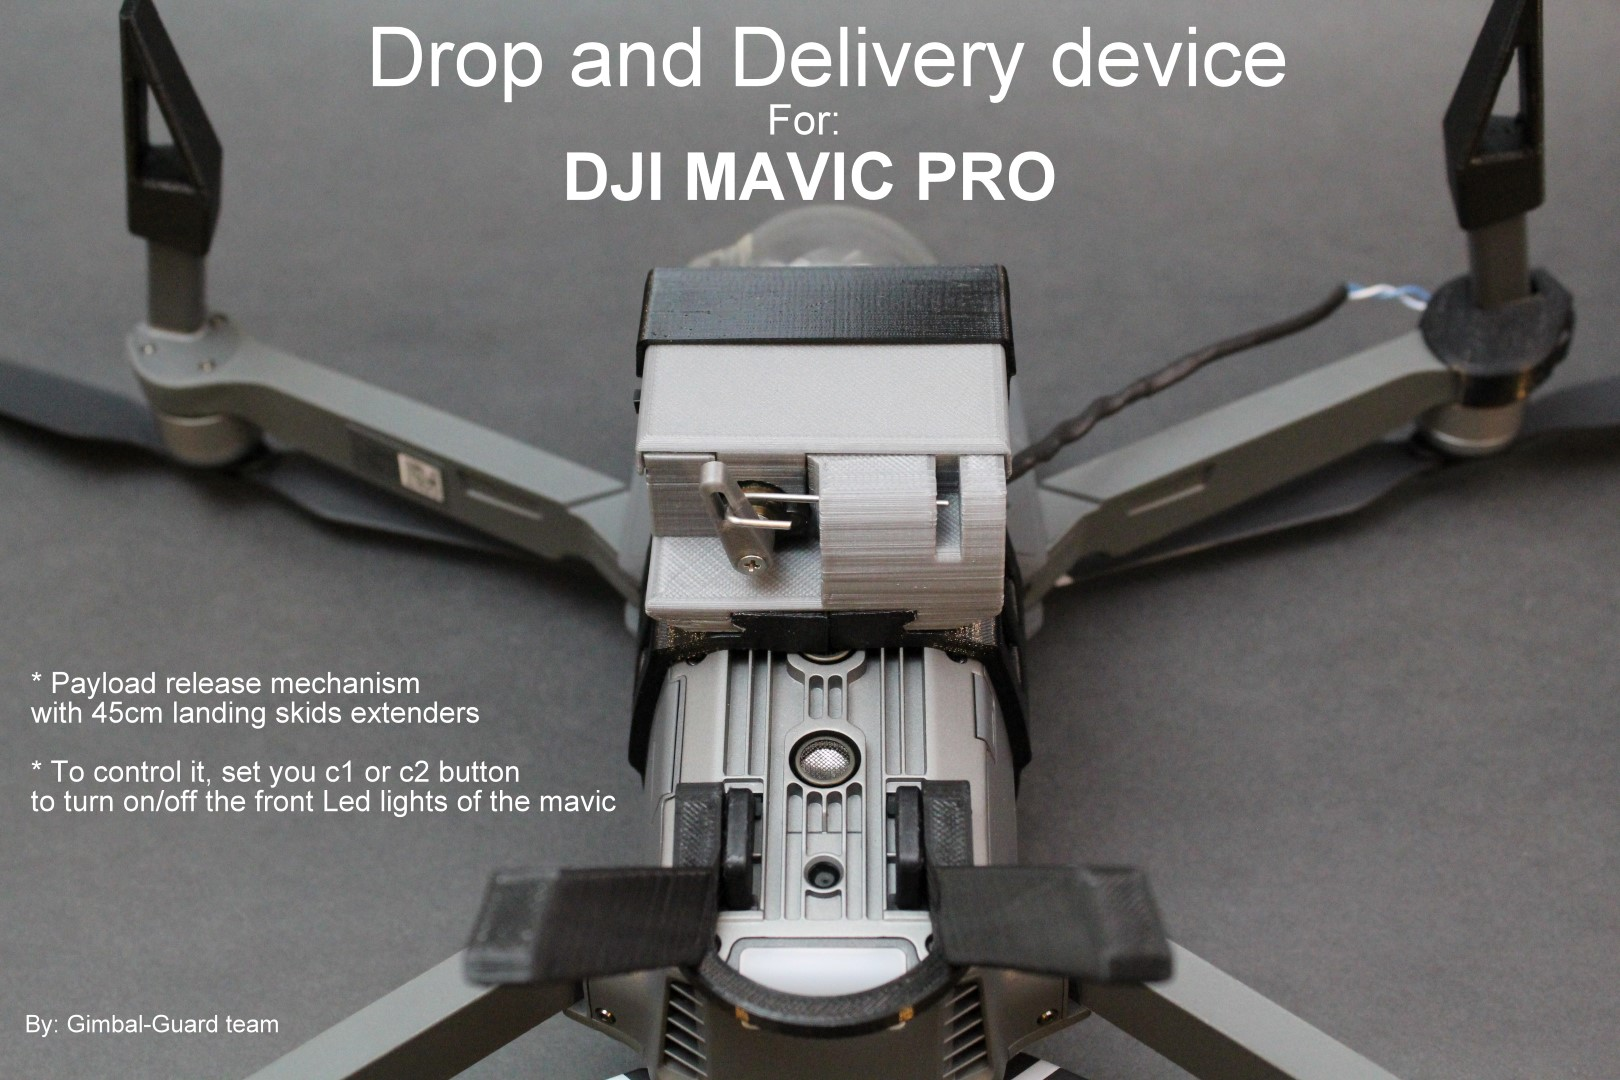 dji mavic drop device